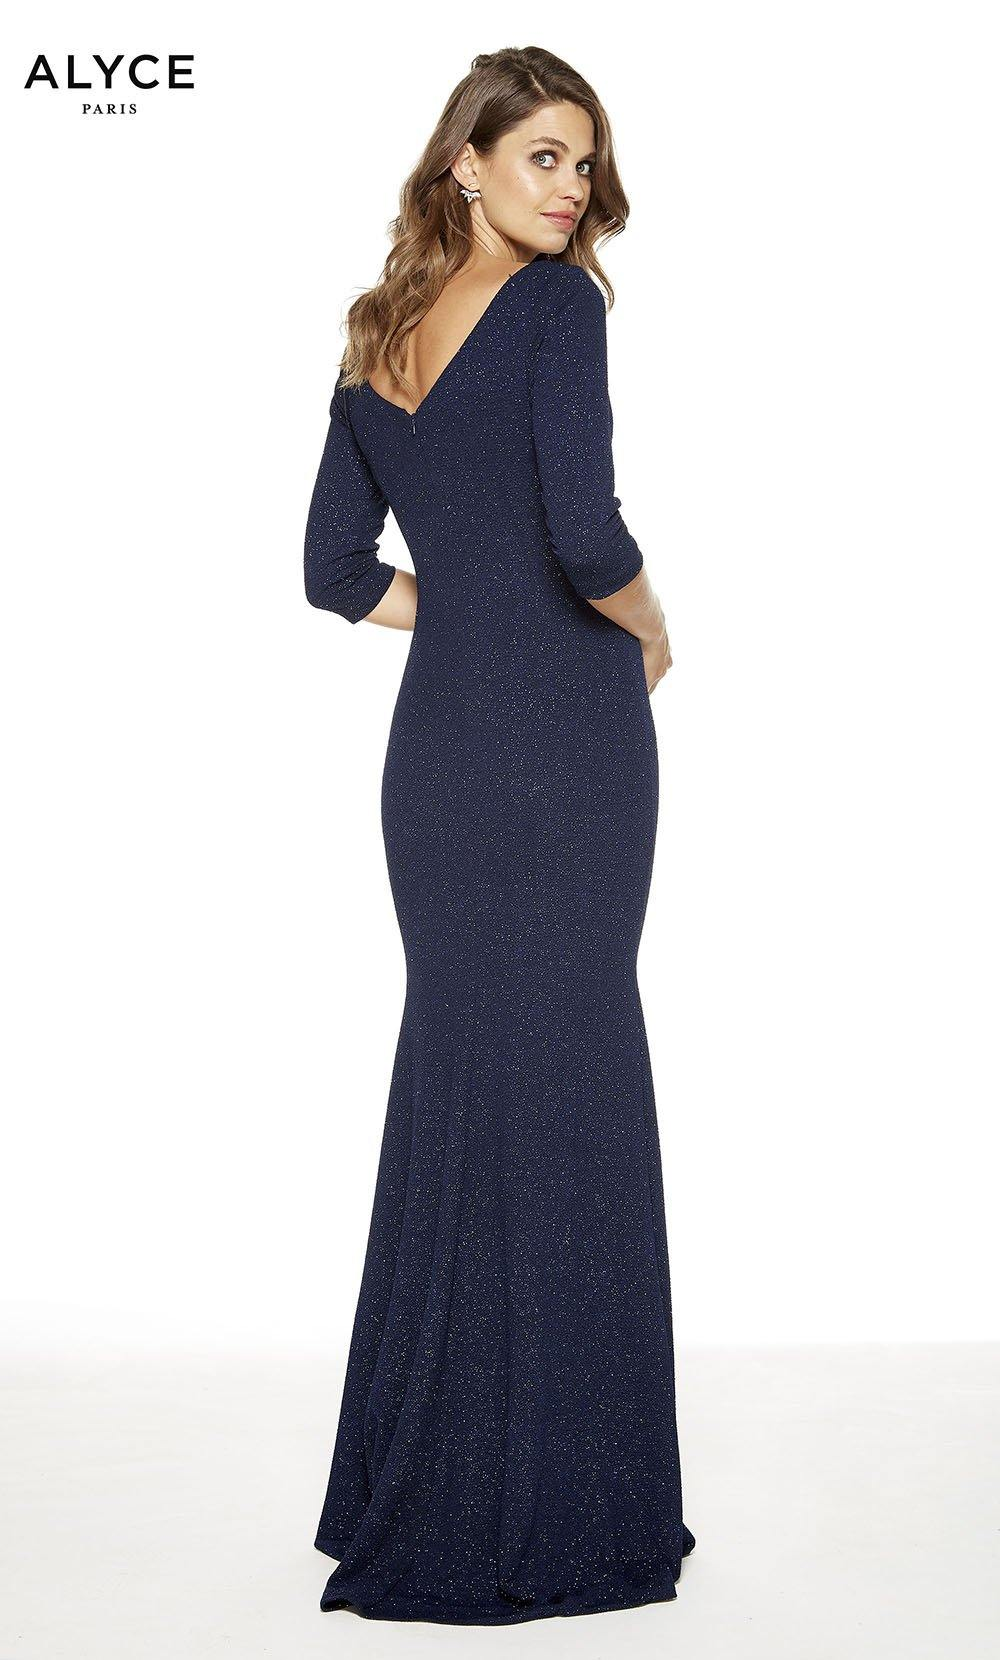 Midnight formal dress with a v-shaped back and 3/4 sleeves